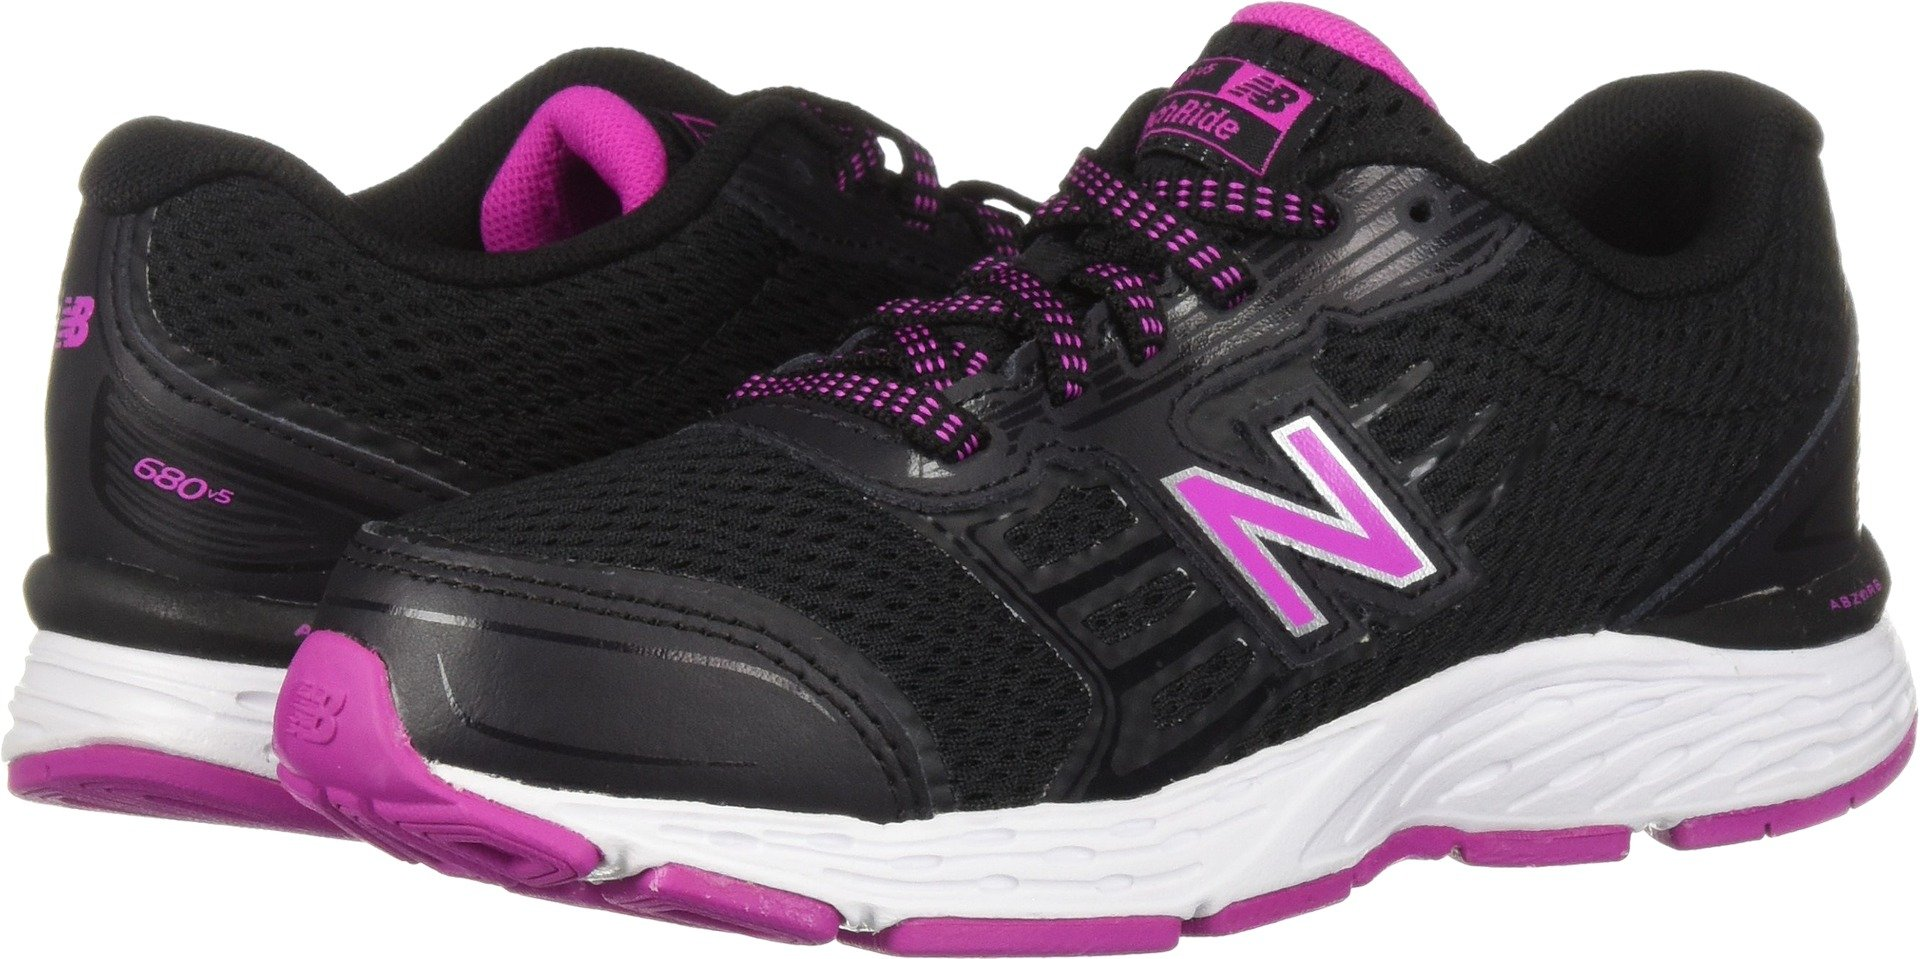 New Balance Girls' 680v5 Running Shoe, Black/Azalea, 13 M US Little Kid